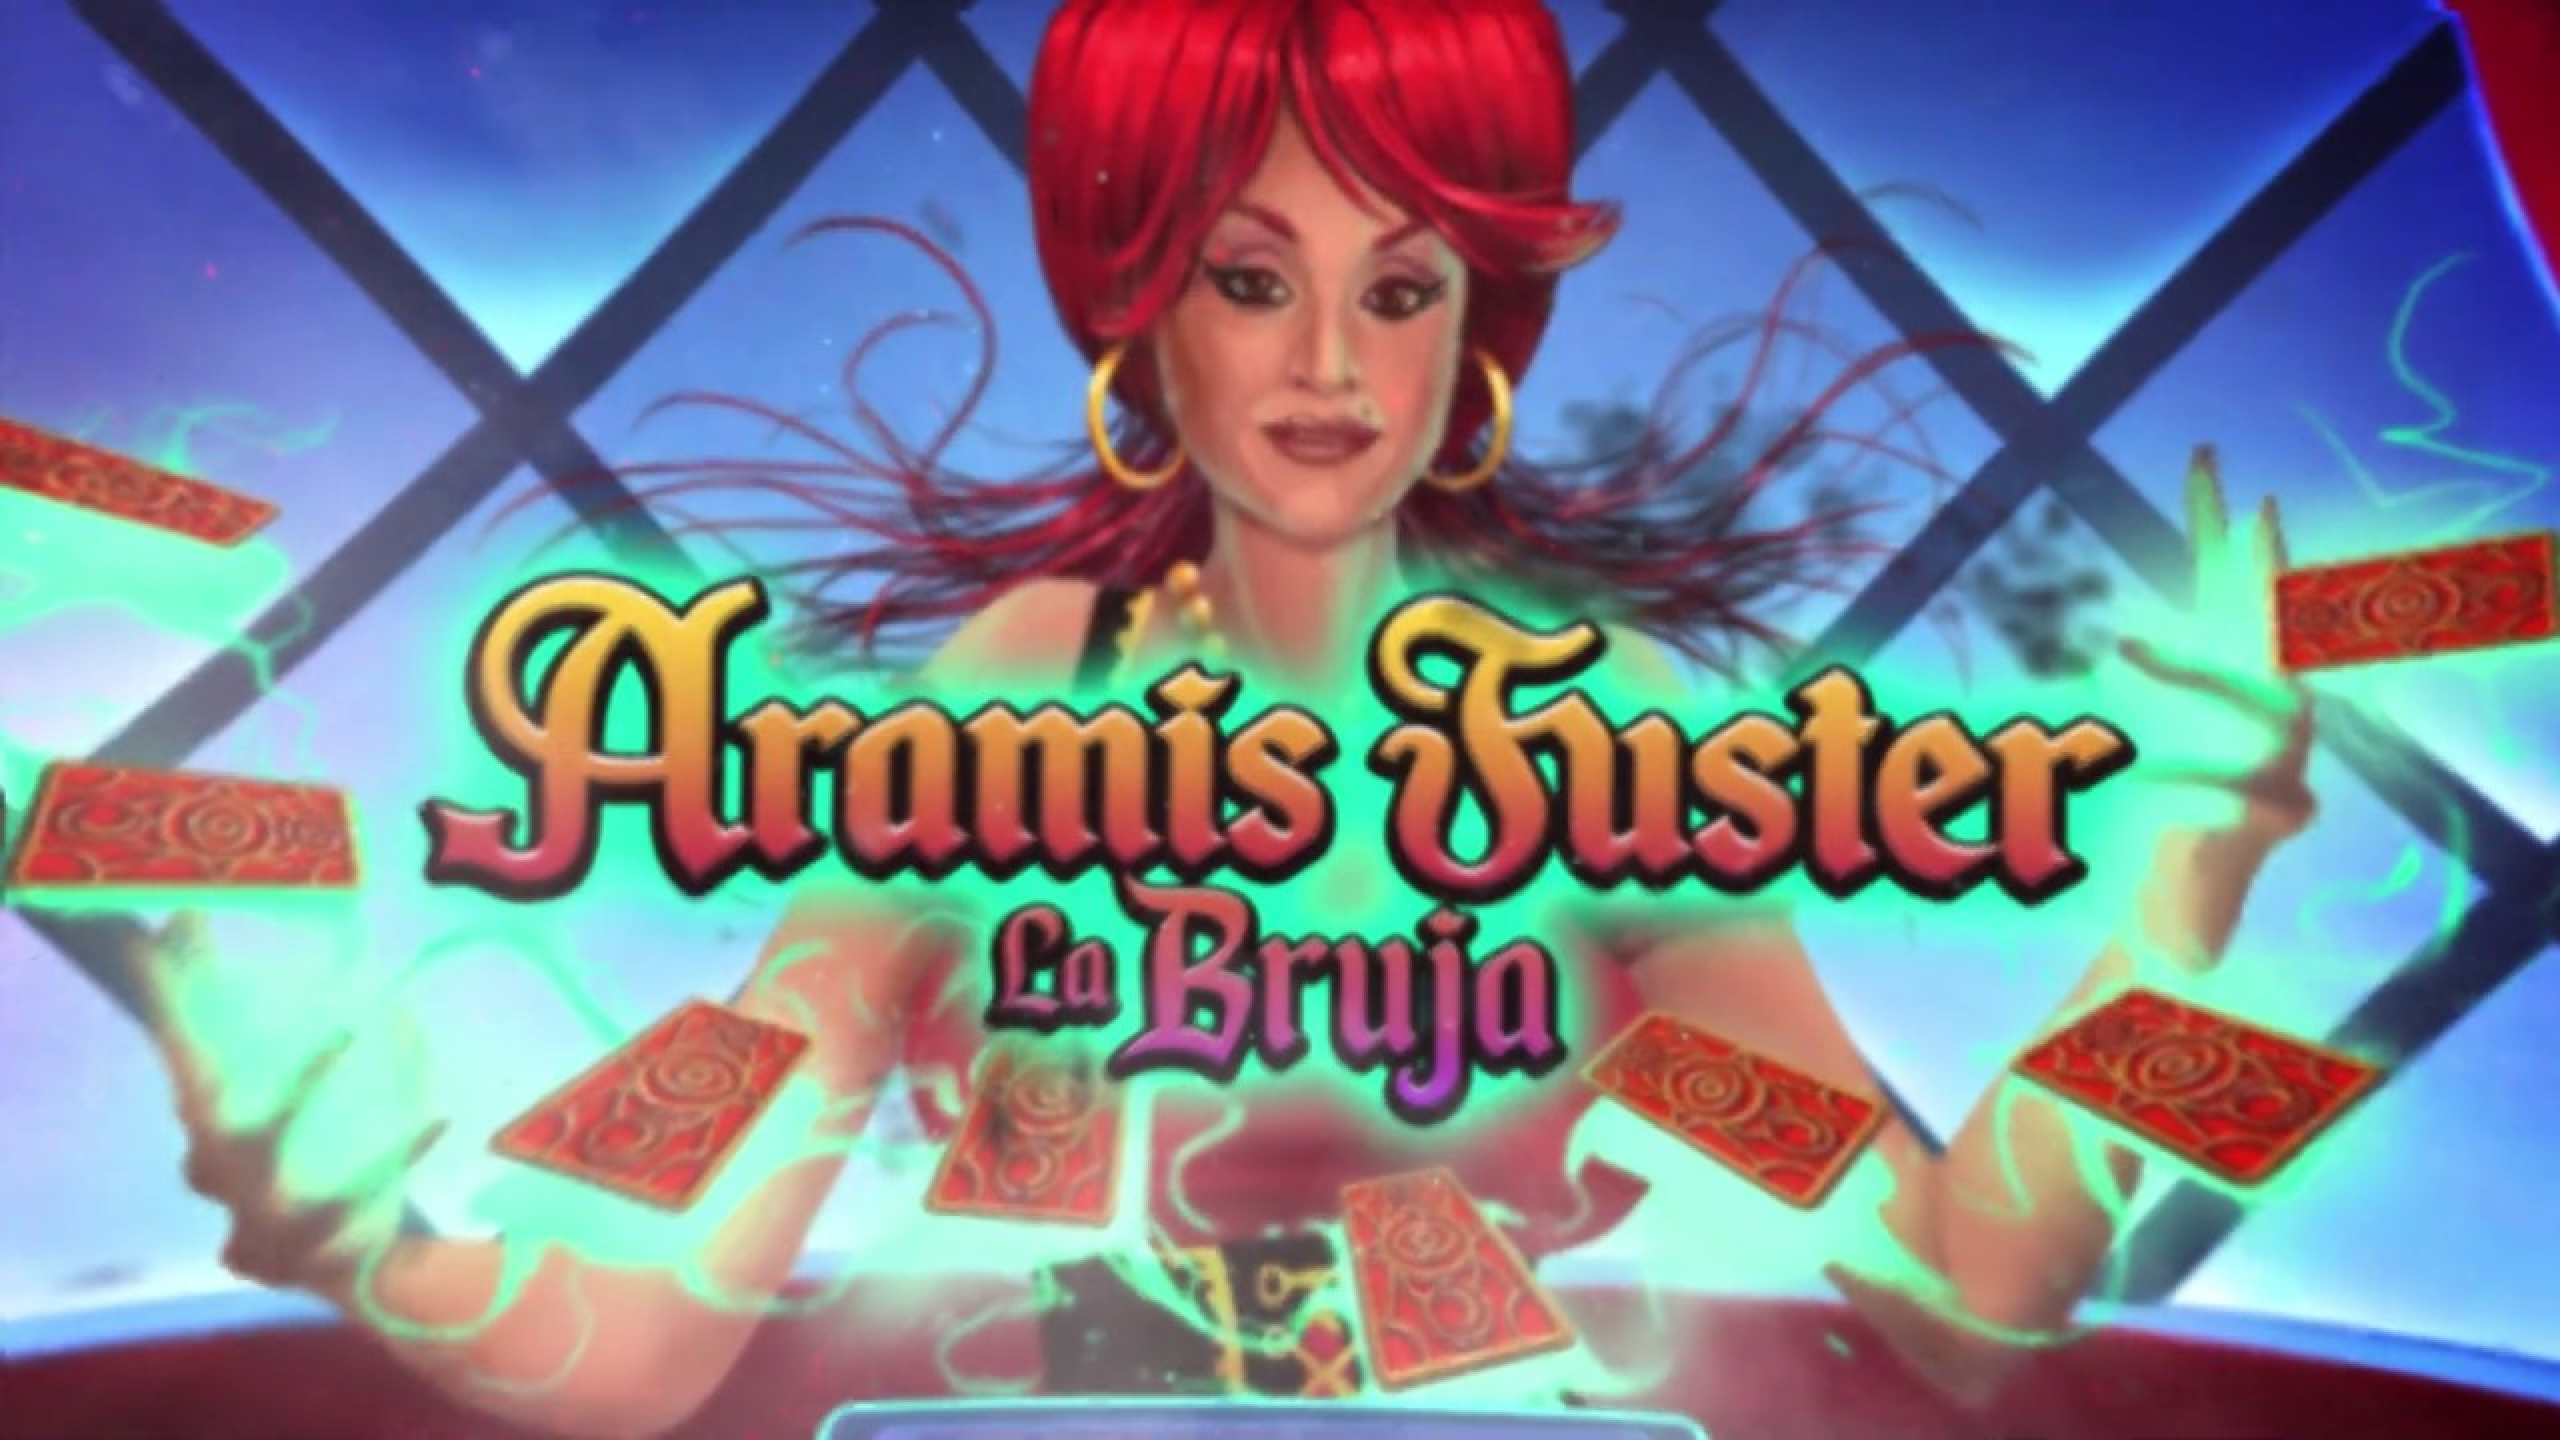 The Aramis Fuster La Bruja Online Slot Demo Game by MGA